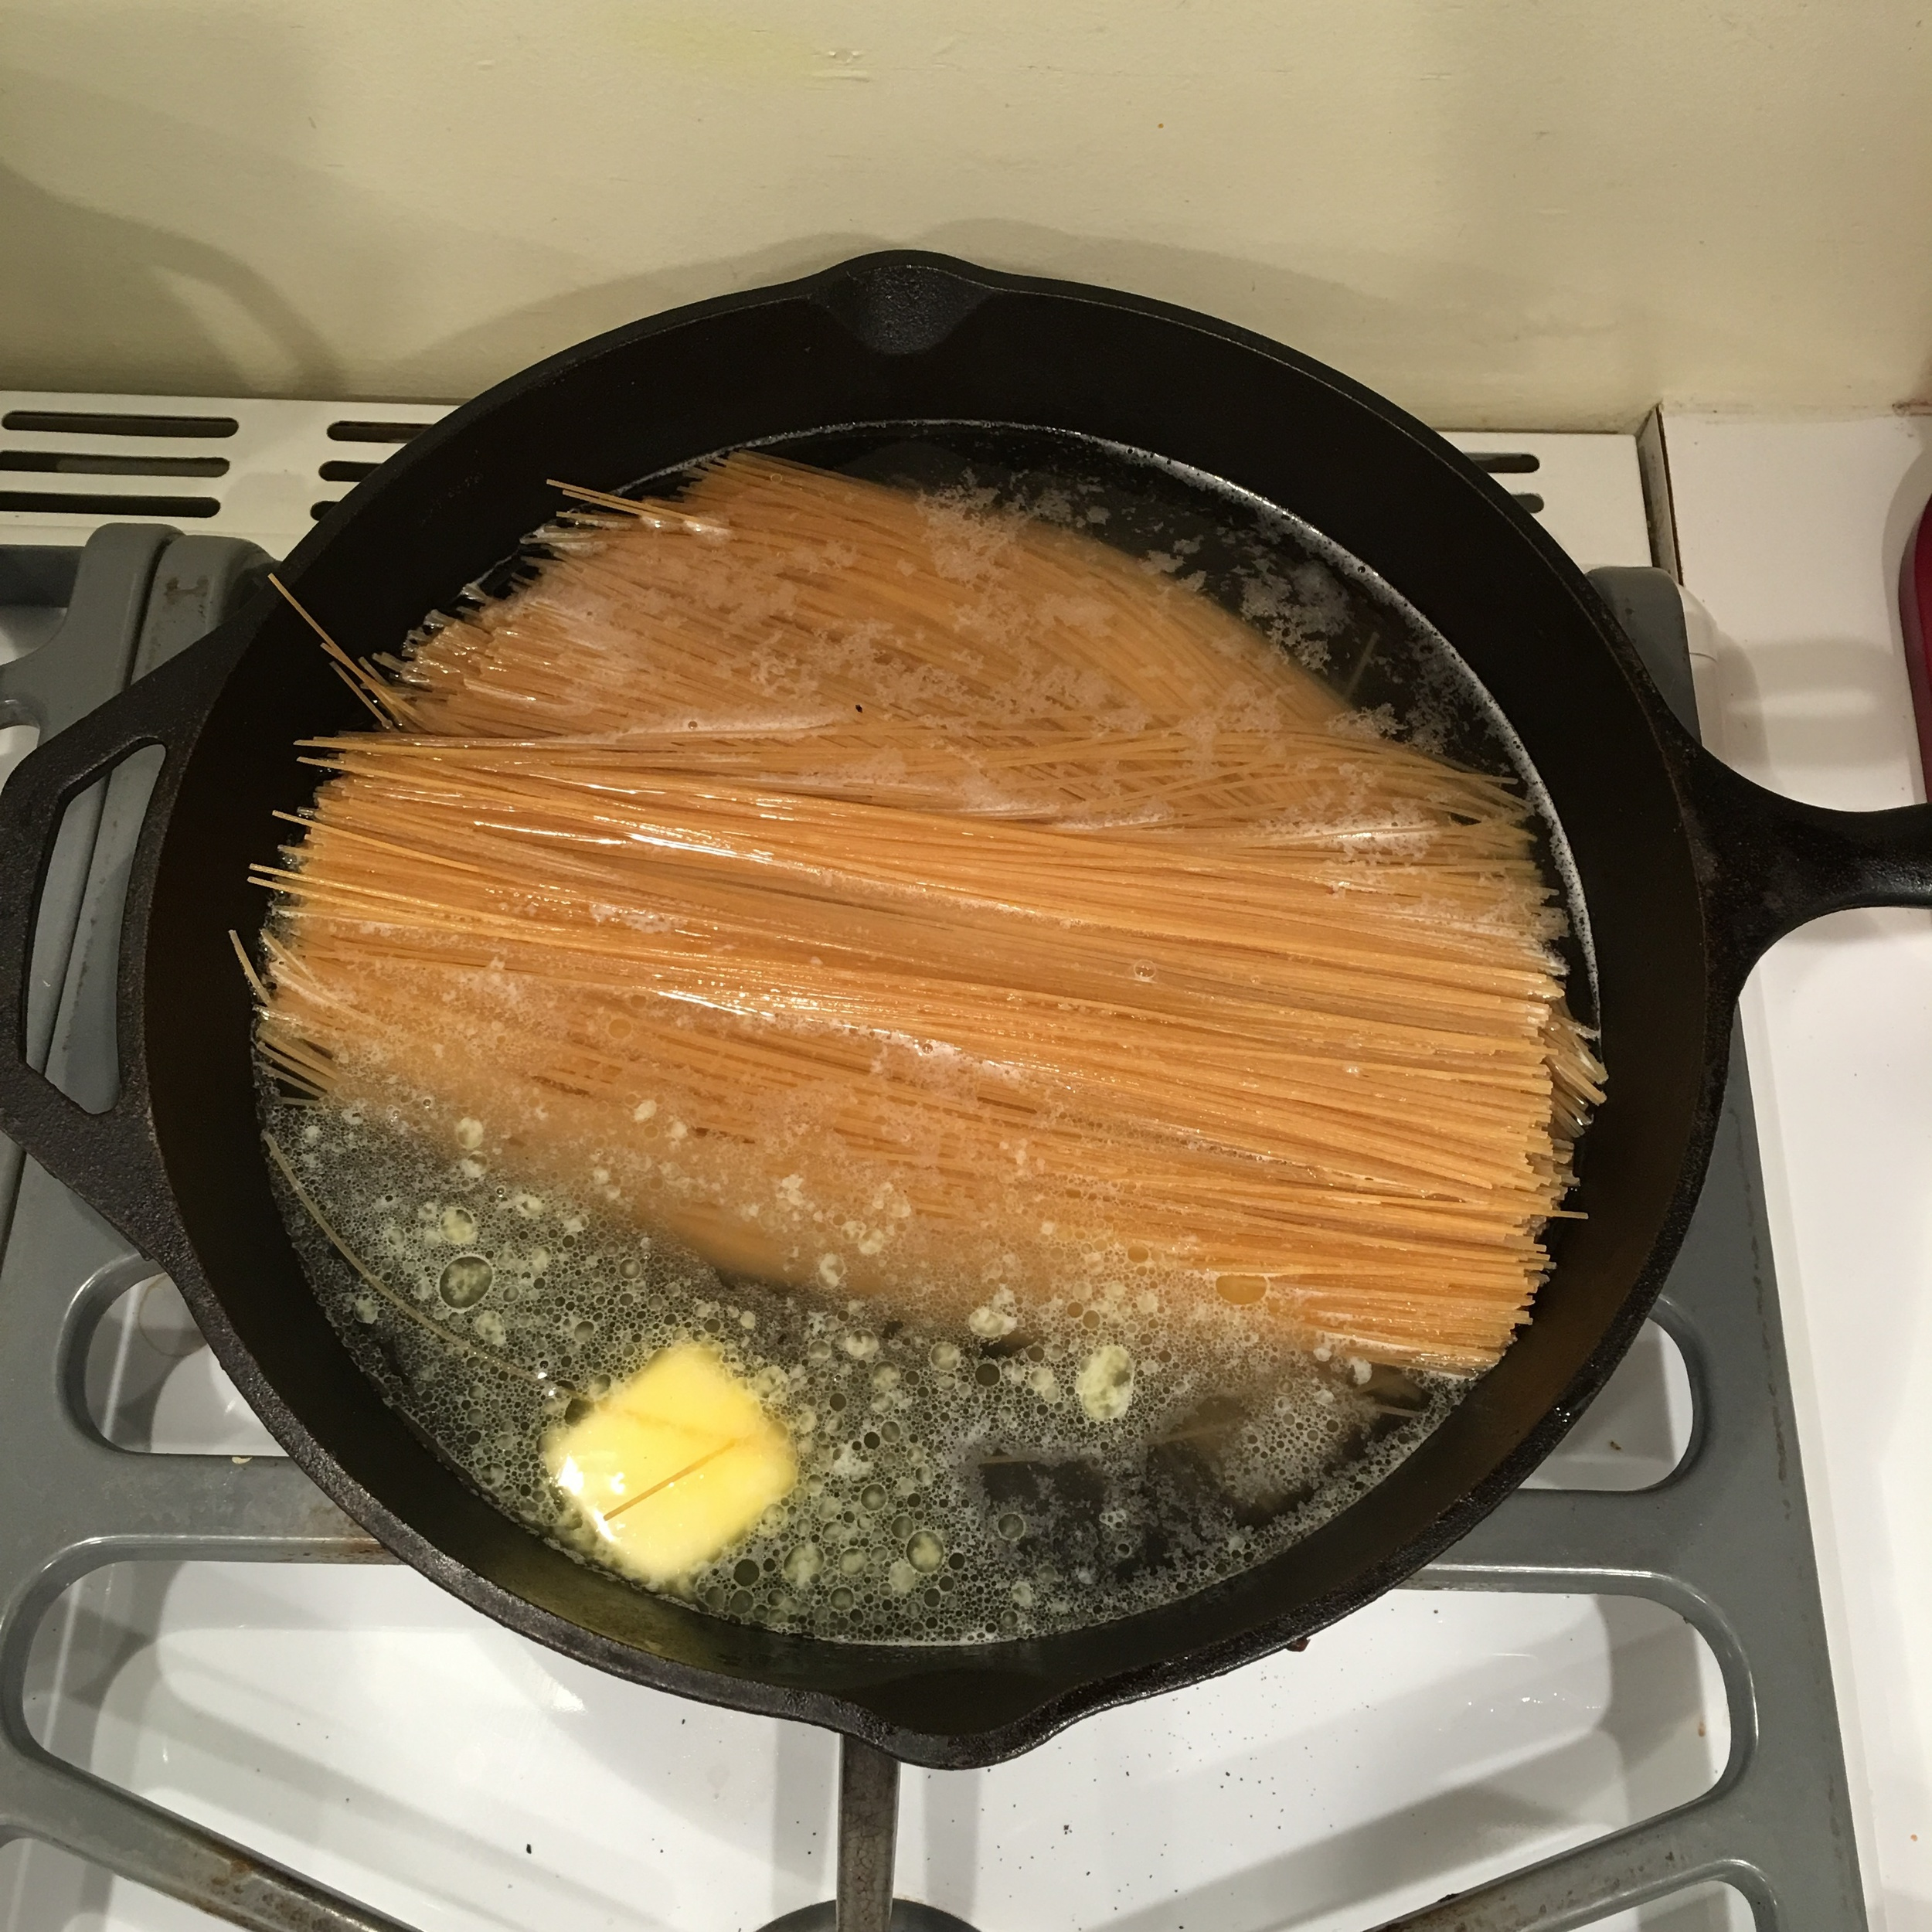 a new way to cook pasta!